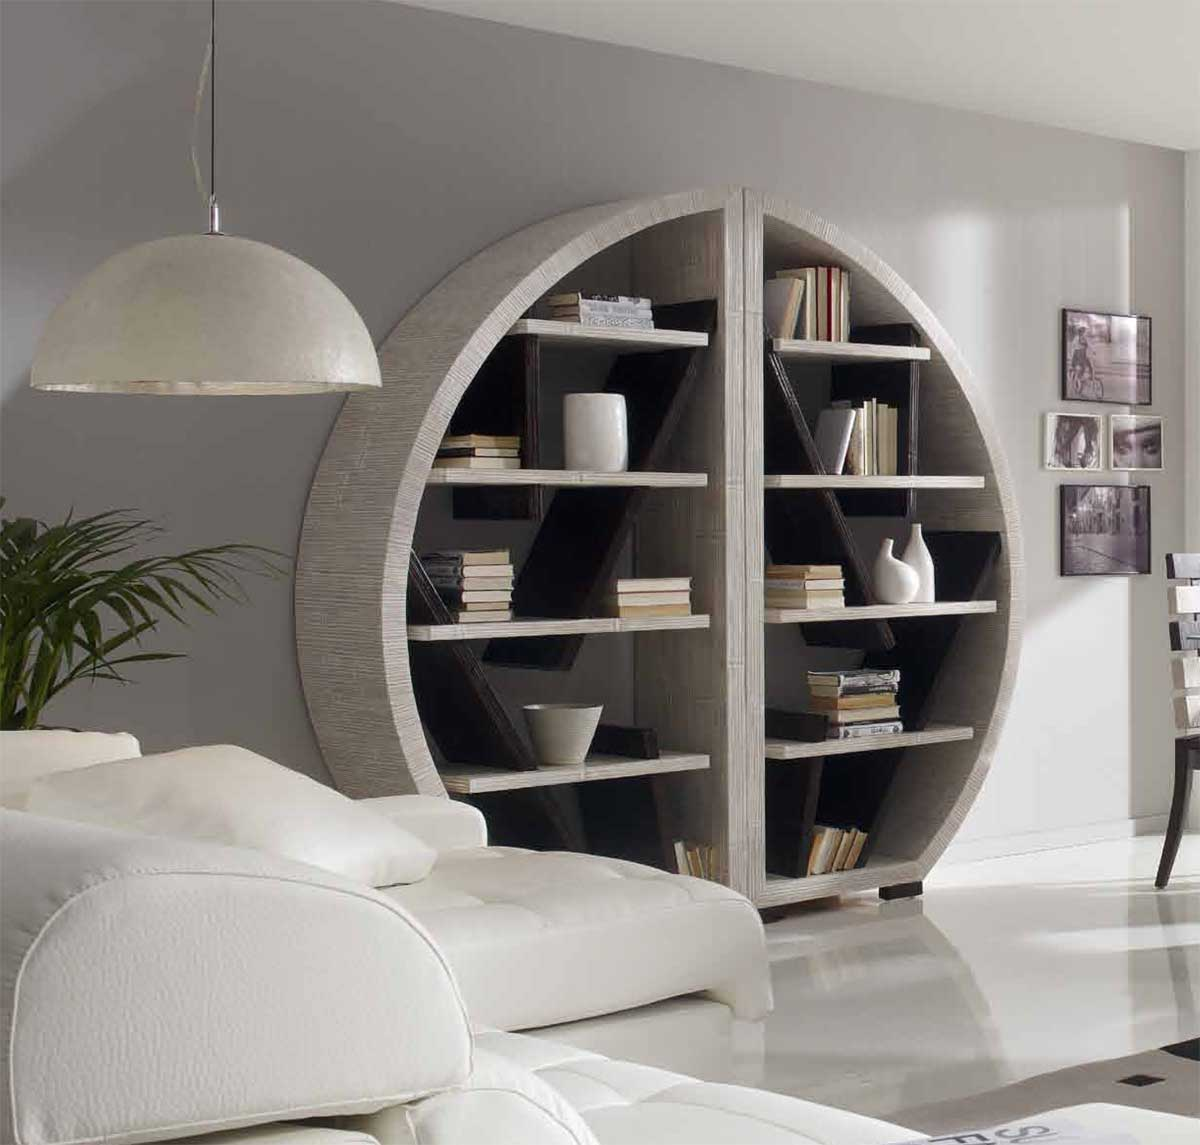 une s paration g niale avec la biblioth que bambou demi lune indah. Black Bedroom Furniture Sets. Home Design Ideas